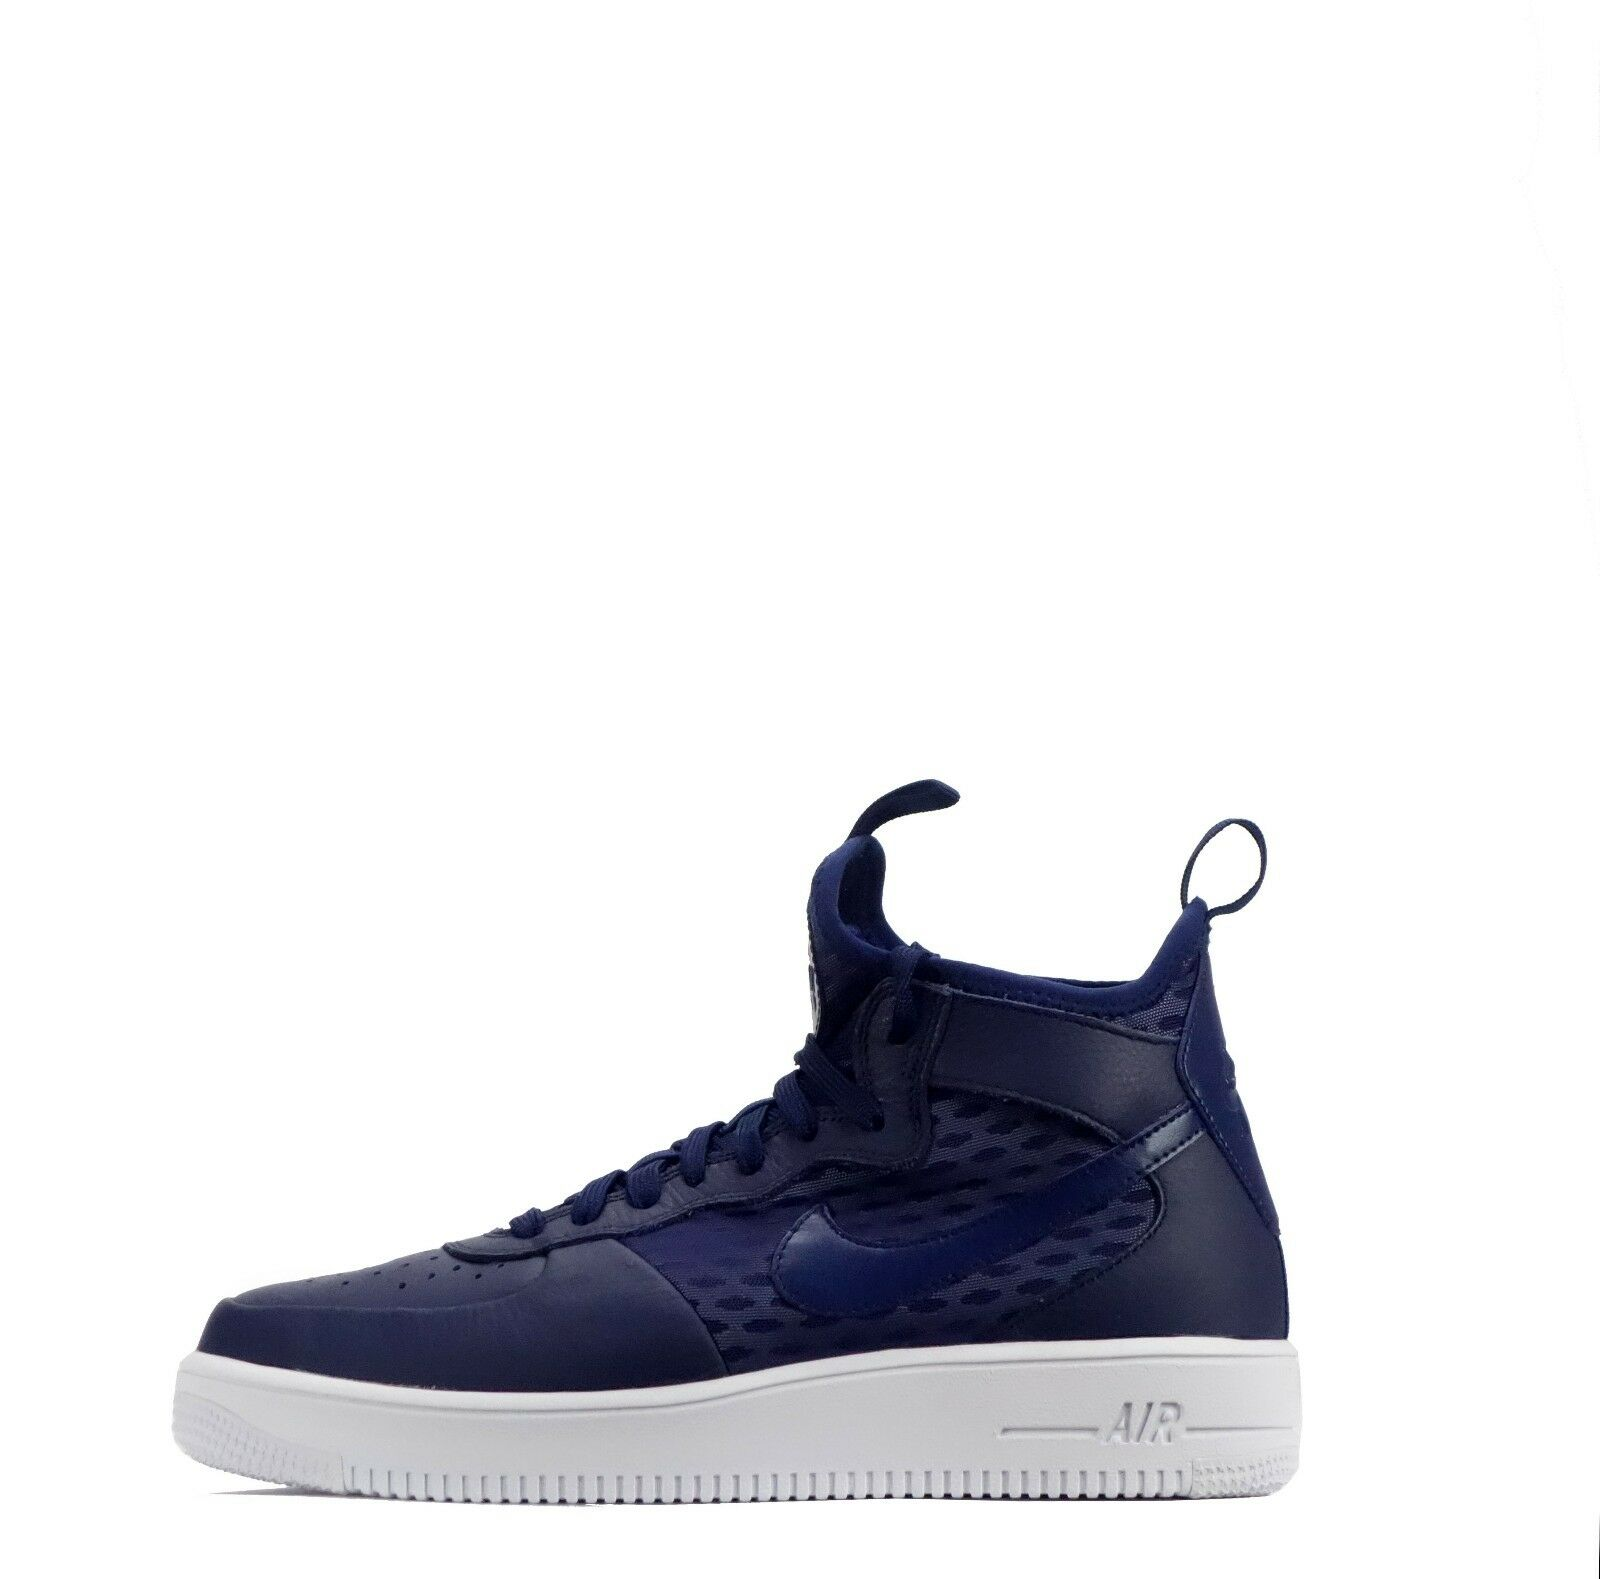 Nike Air Force 1 Ultraforce Mid Men's Ankle Style Trainers Shoes in Binary Blue